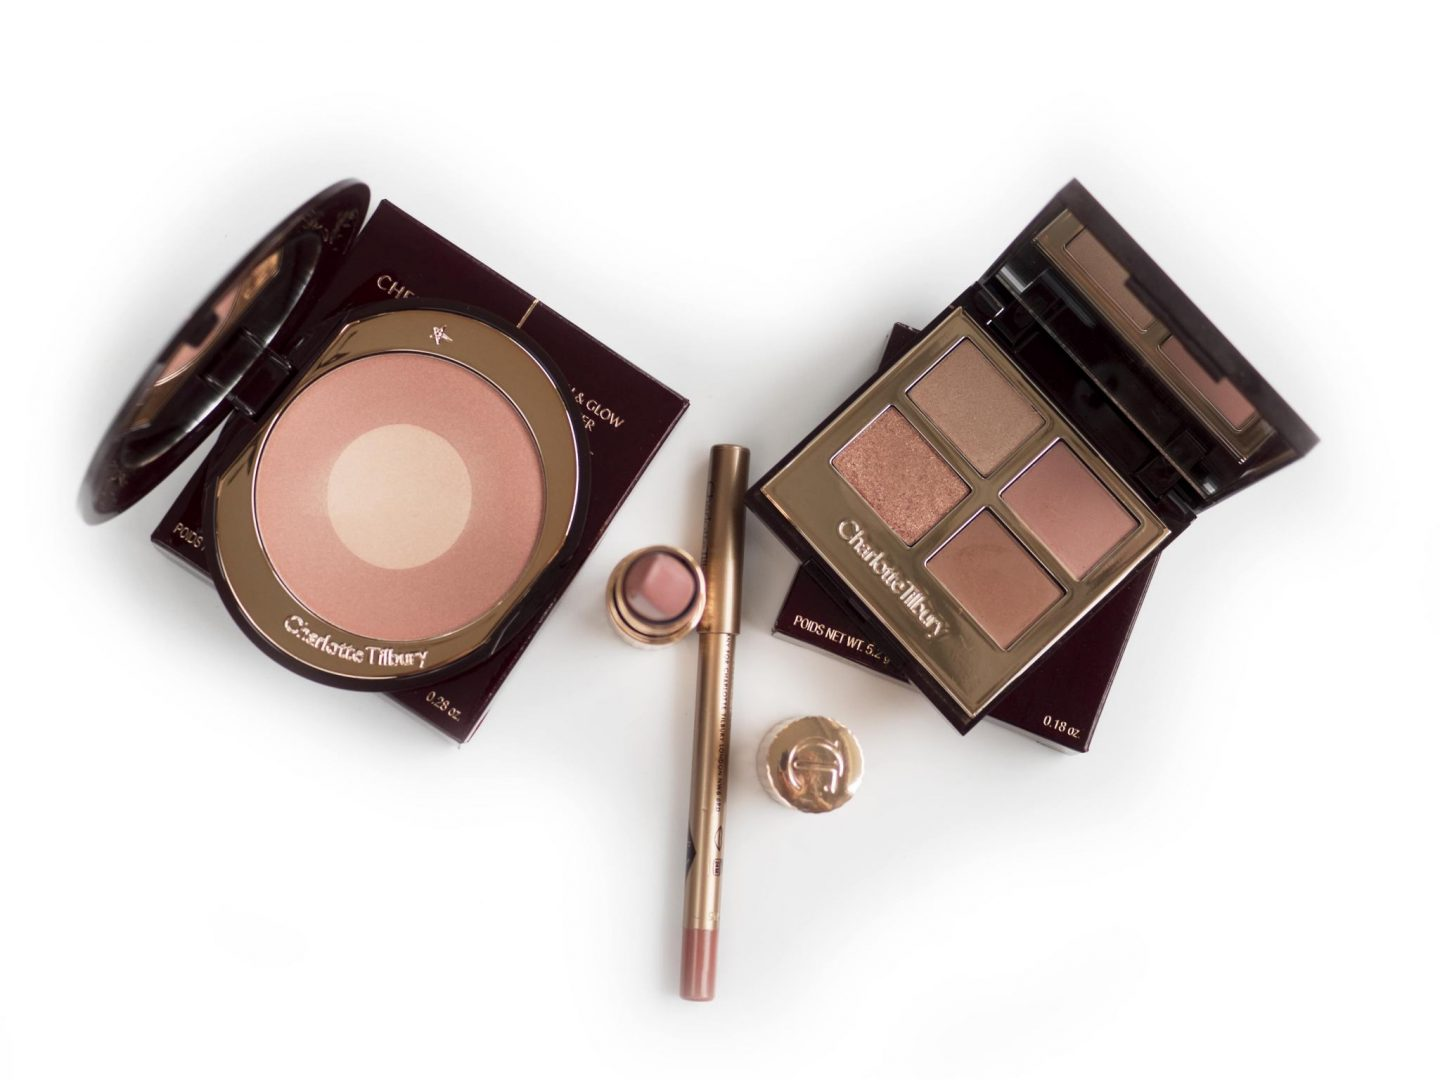 Charlotte Tilbury Pillow Talk Collection – Luxury Eyeshadows/ Cheek to Chic / Matte Revolution / Lip Cheat